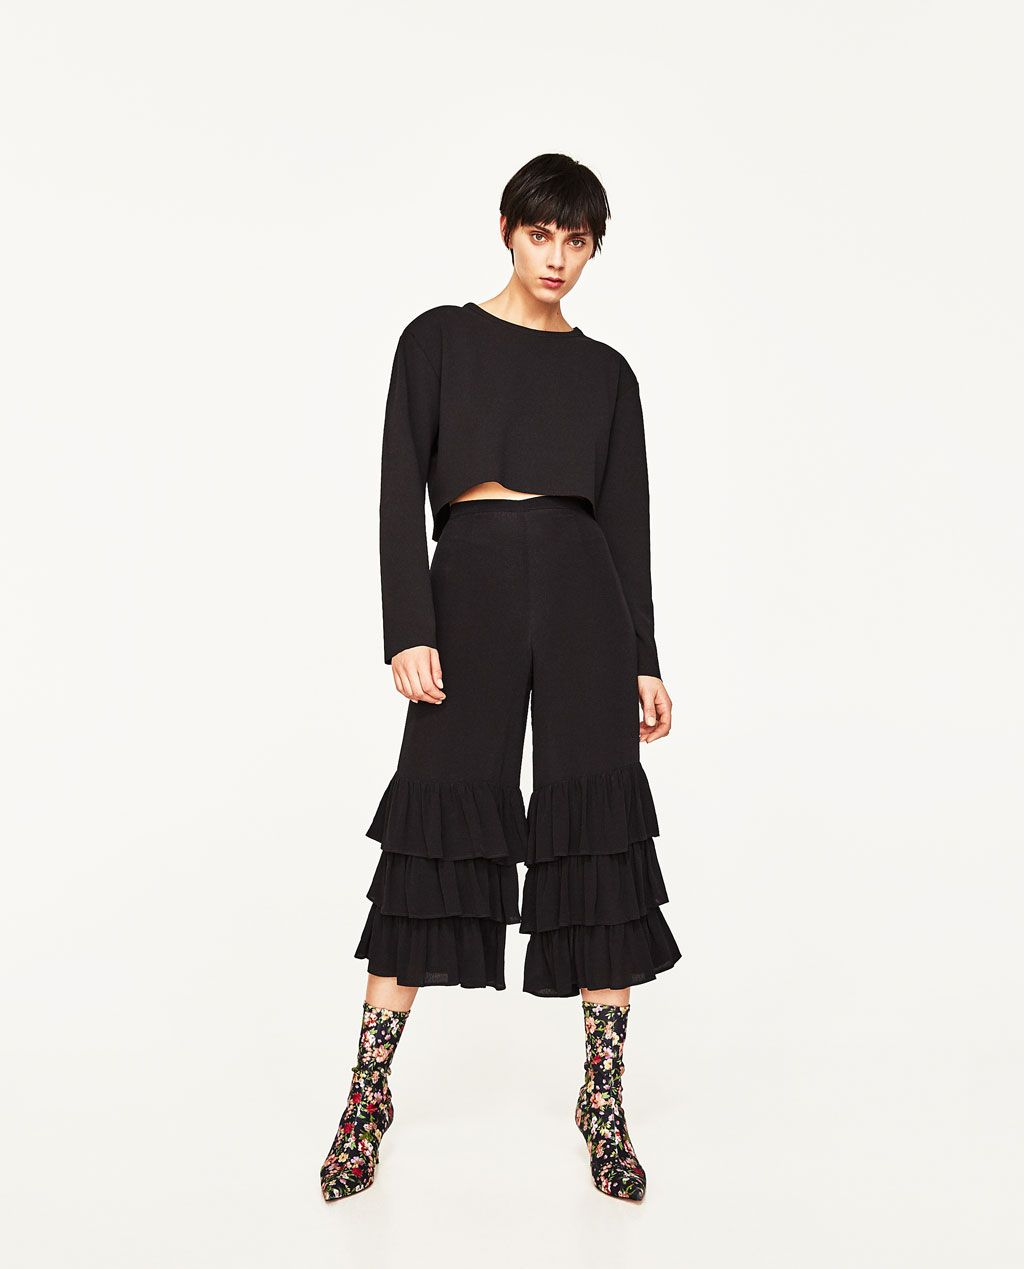 TROUSERS WITH FRILLS-Frilled-TROUSERS-WOMAN   ZARA United States ... b9fd3955f3b